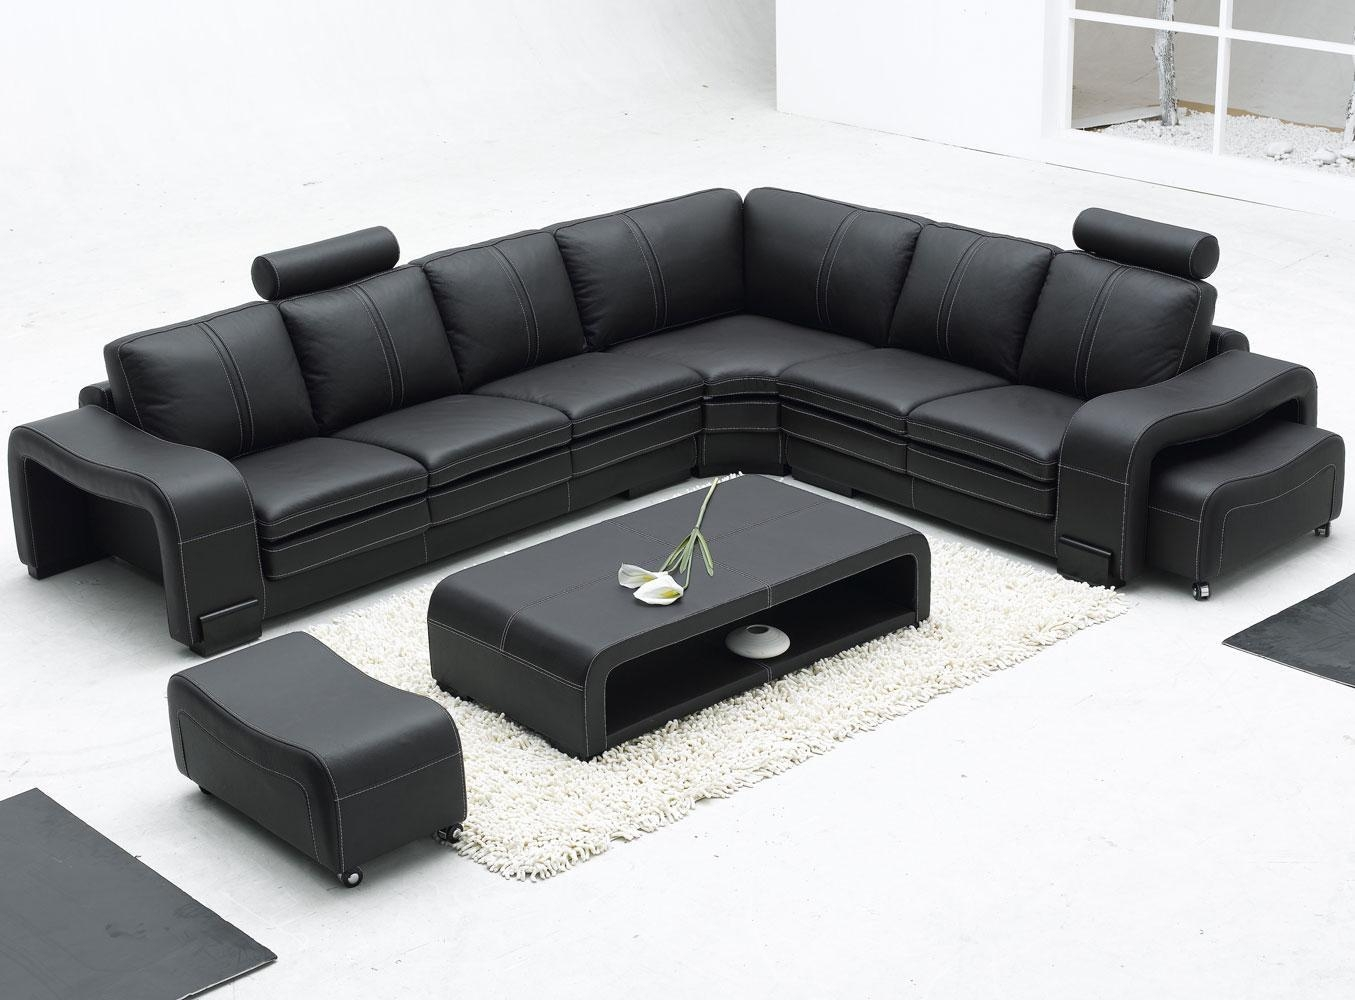 Modern Style Contemporary Black Leather Sofa With Modern Black Regarding Contemporary Black Leather Sofas (View 8 of 20)